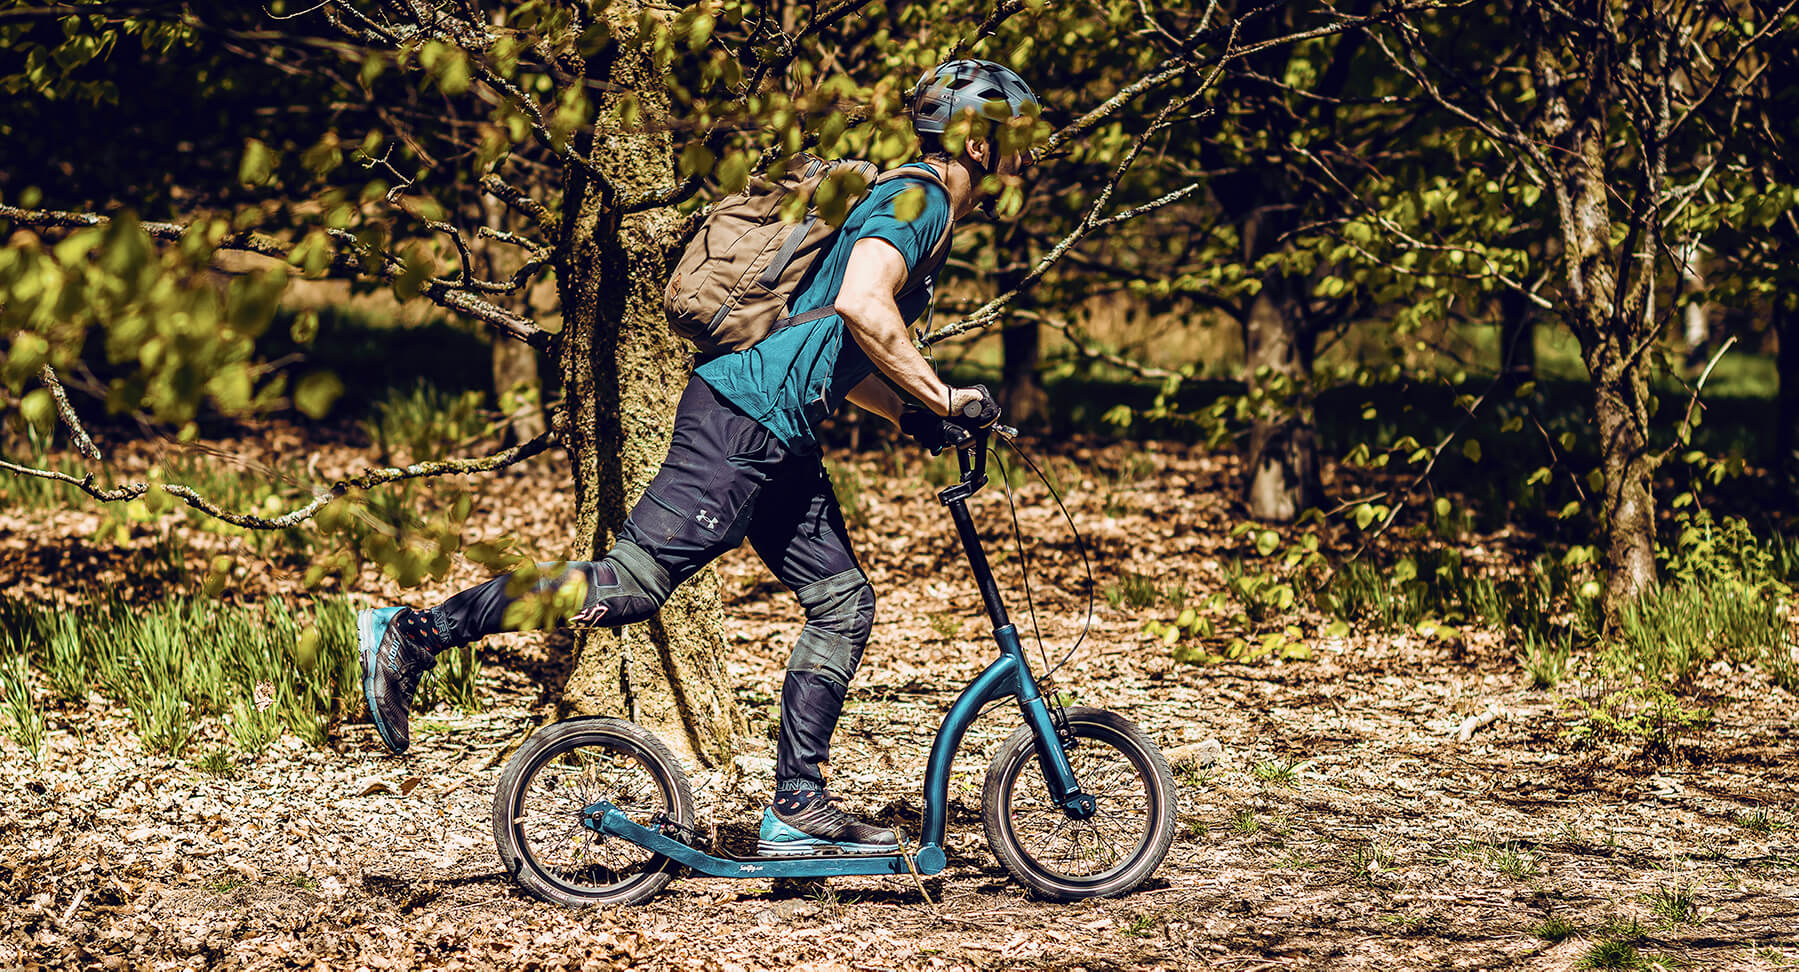 dirt scooter, off road adult scooter